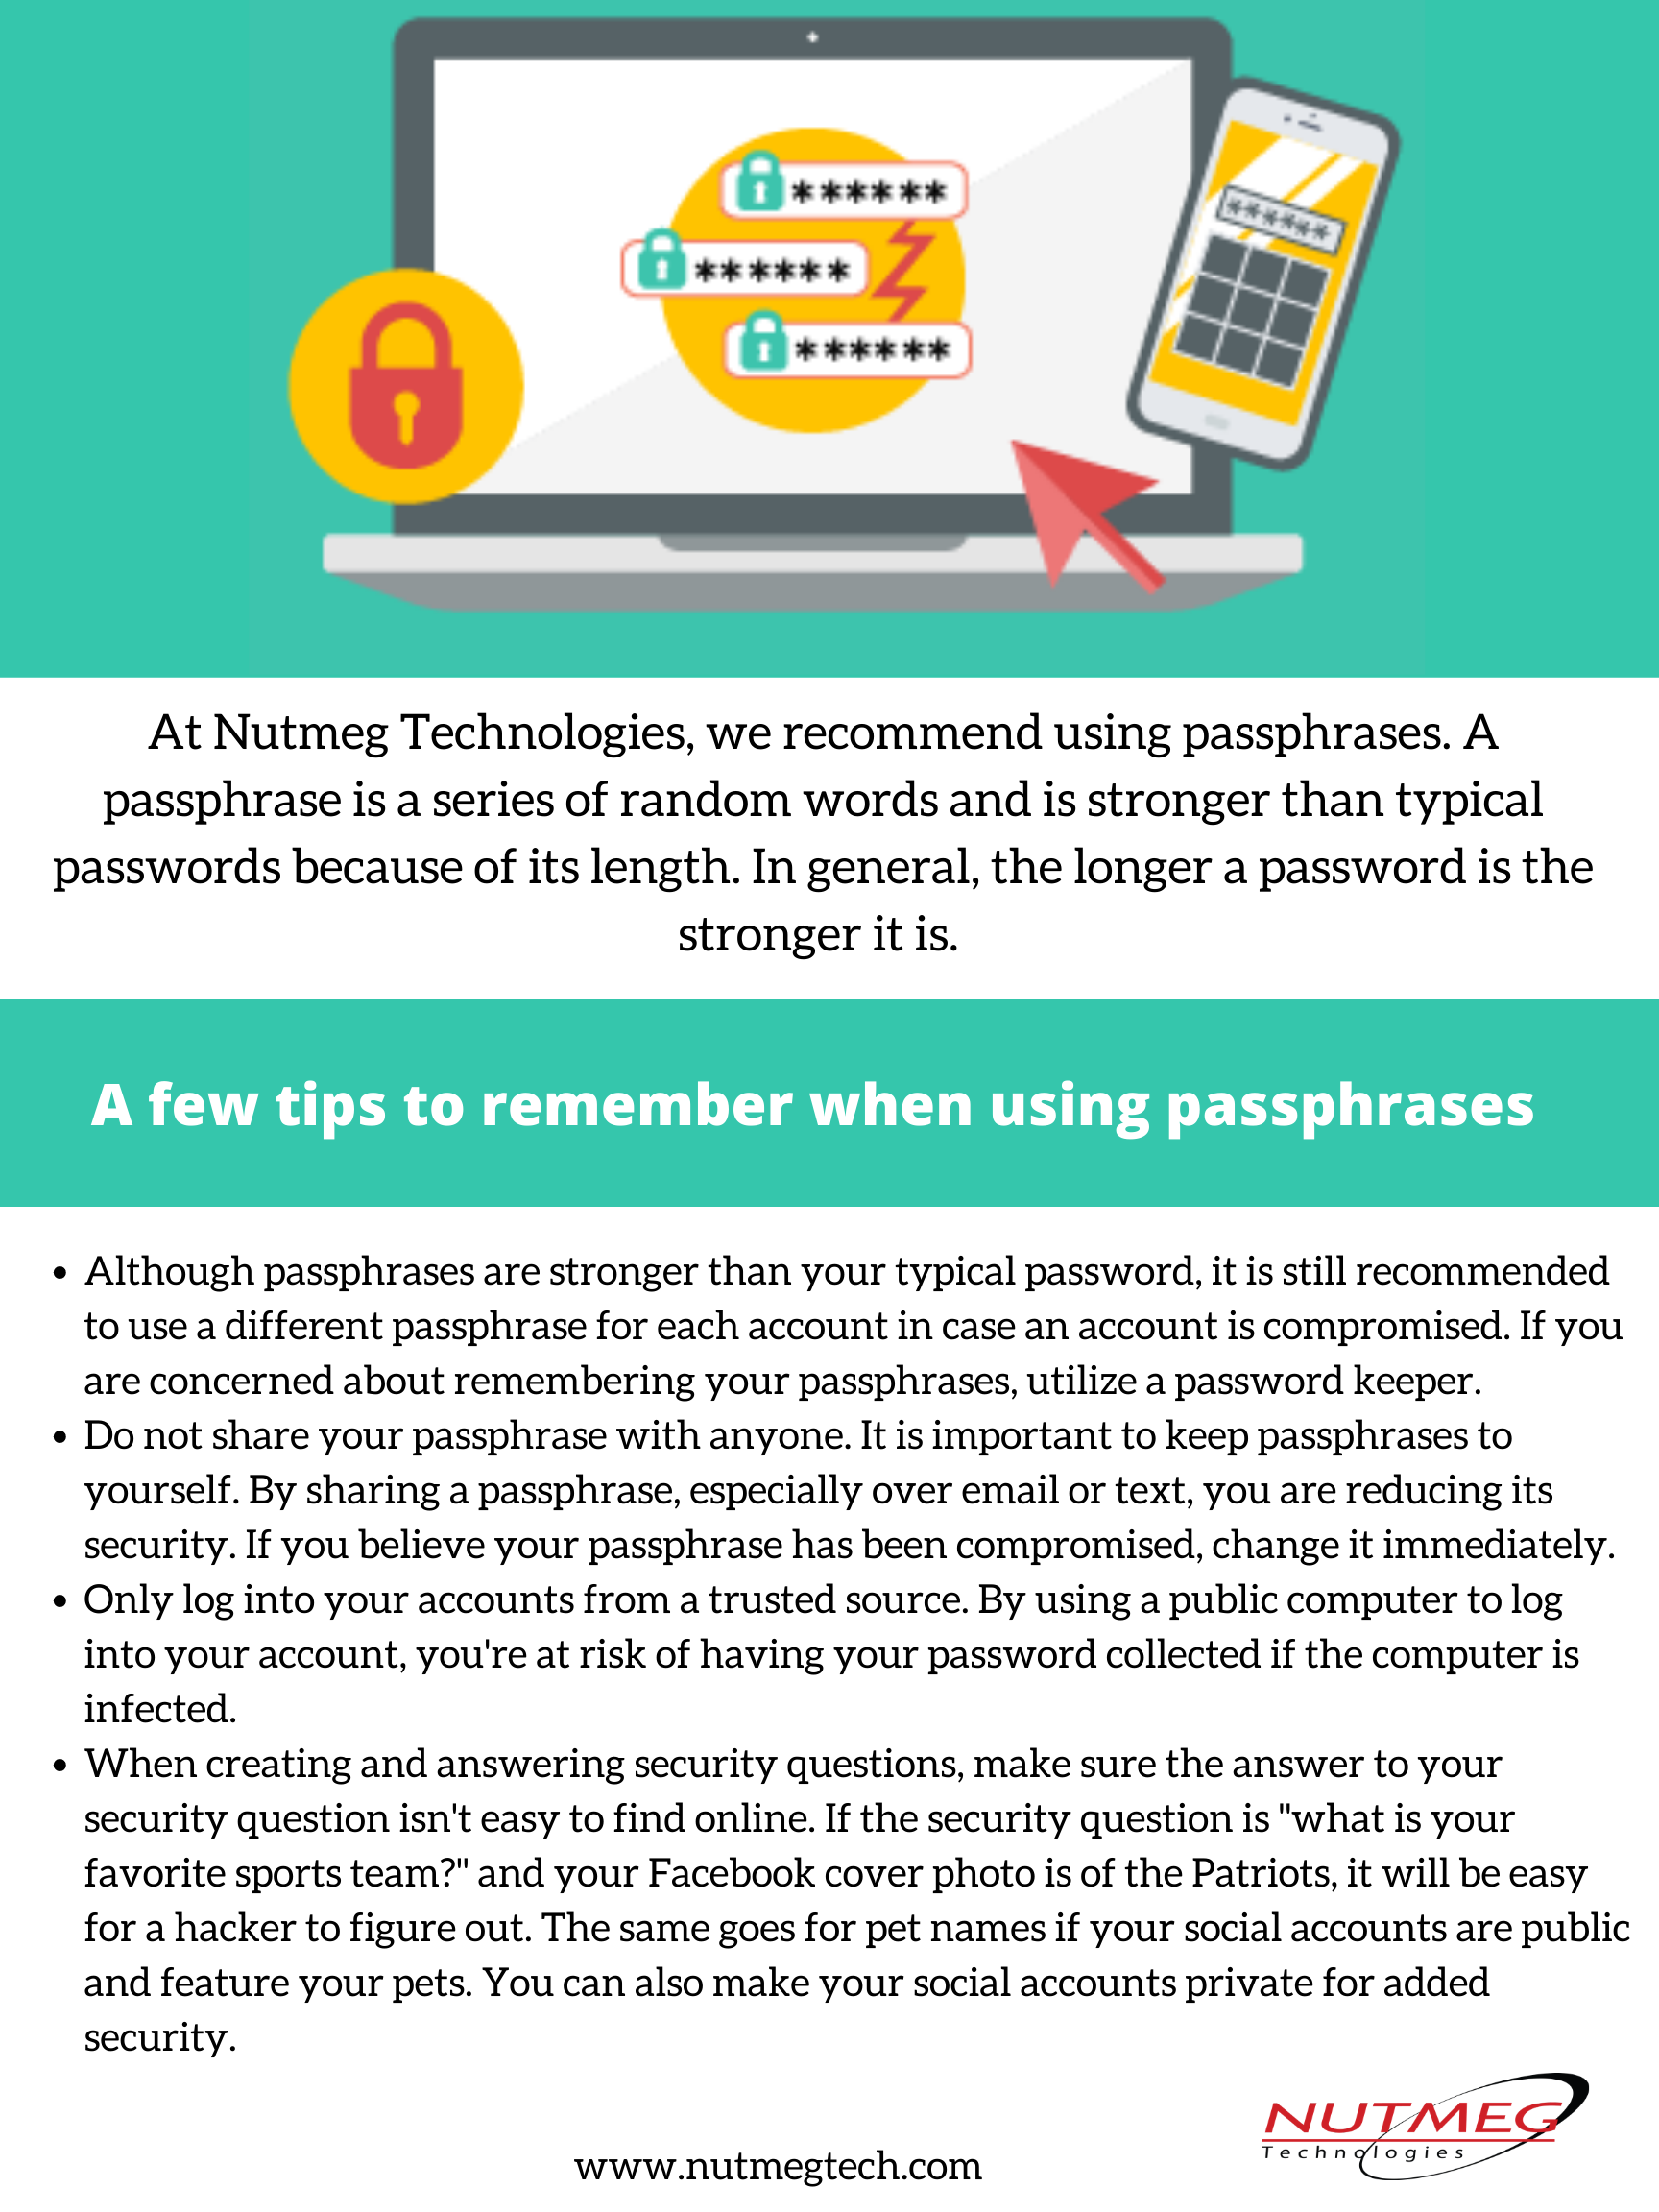 A few tips to remember when using passphrases